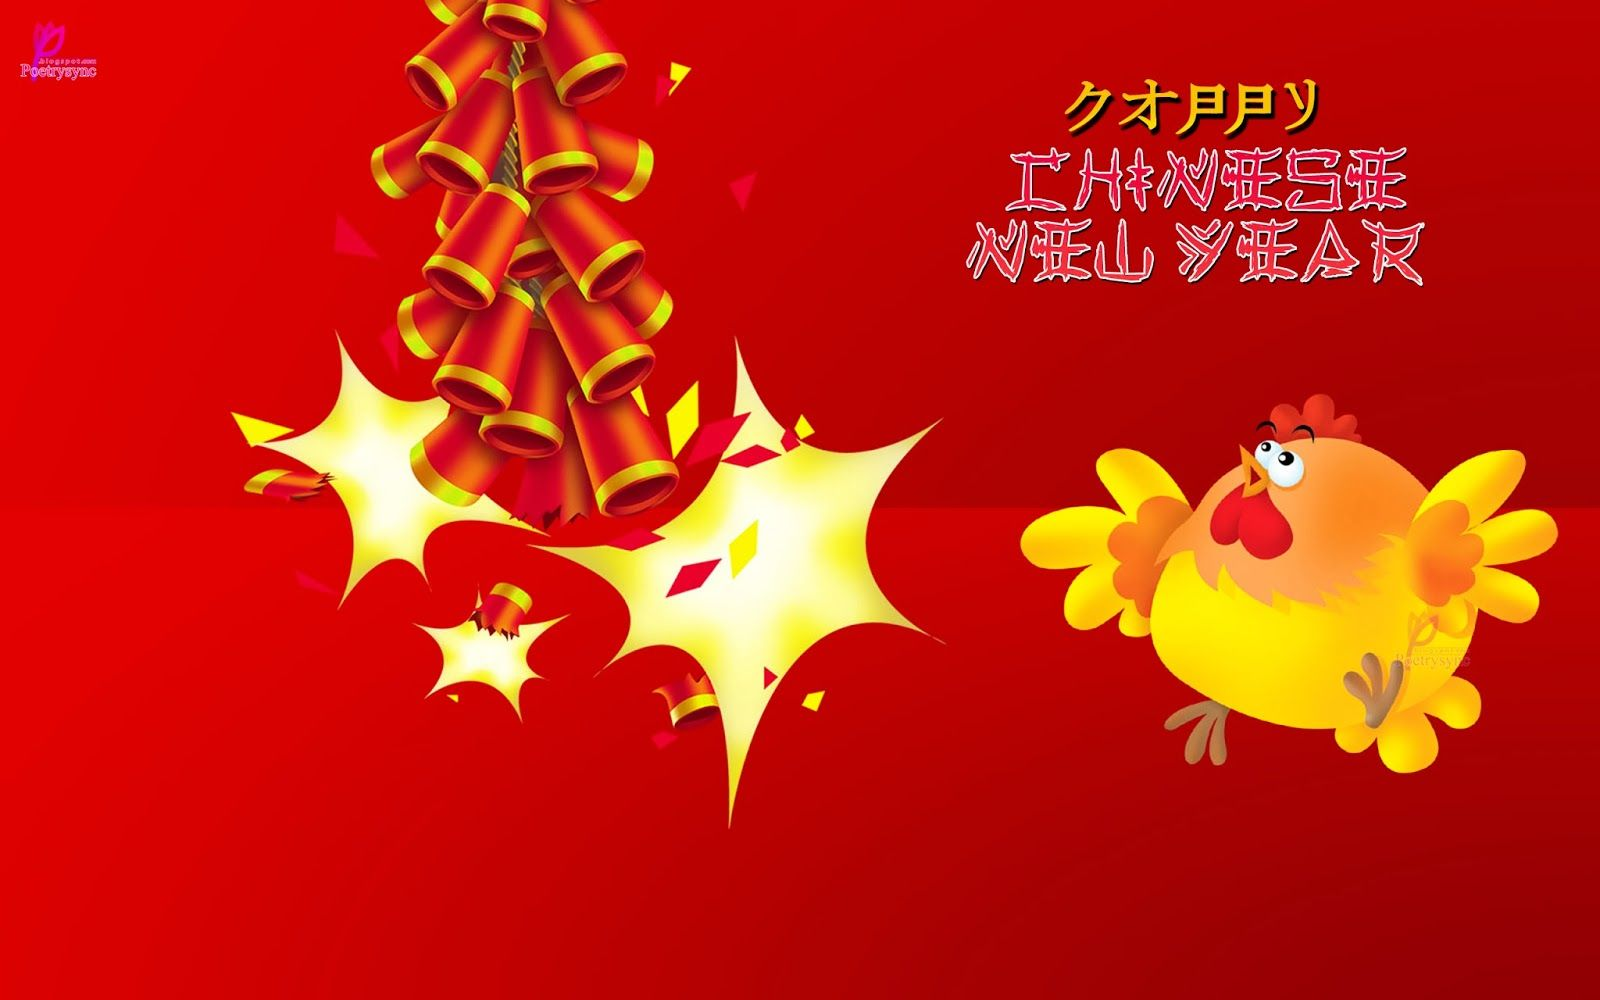 chinese new year wishes image wallpaper happy lunar new year card tet new year image happy - Happy Lunar New Year In Chinese